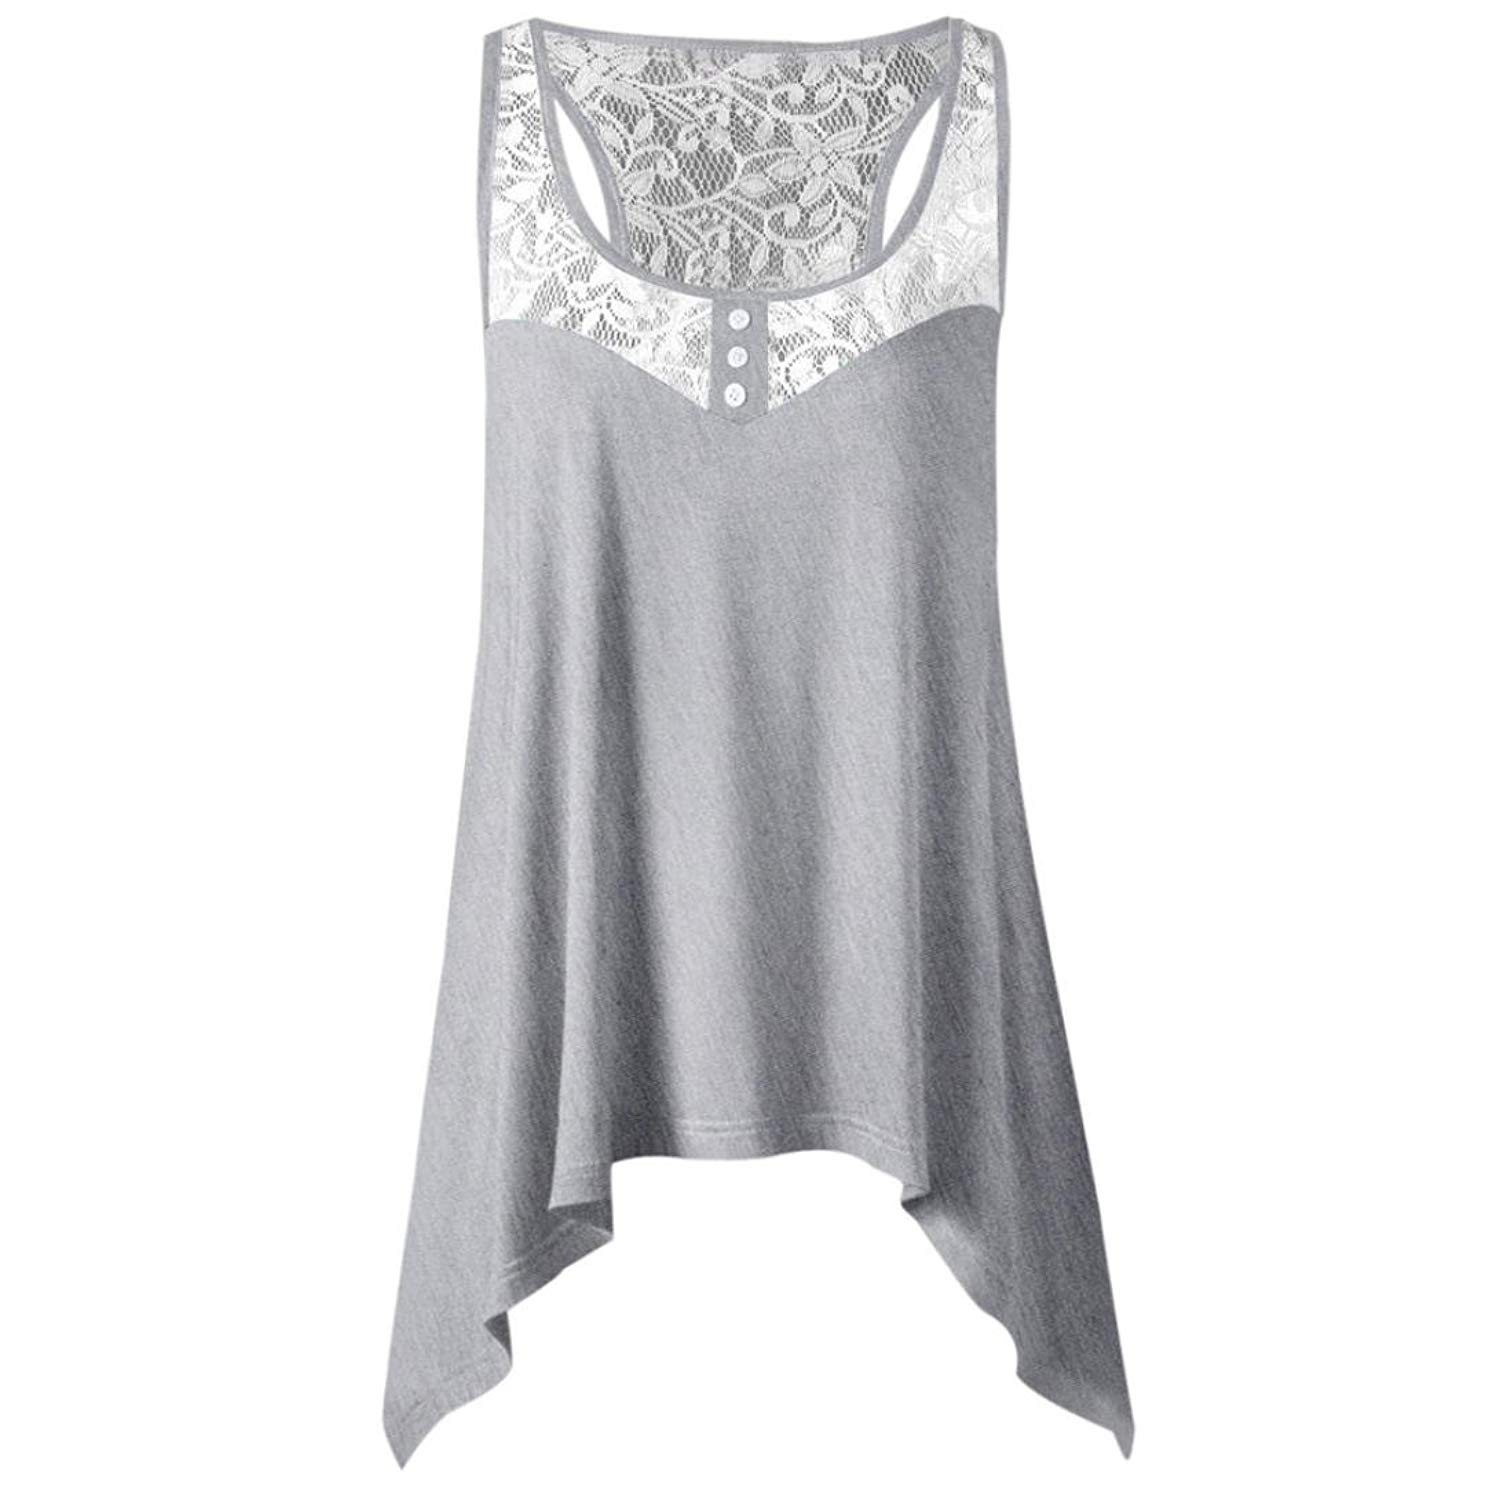 Leedford Clearance! Women Tank Tops, Women Summer Irregular Lace Vest Top Sleeveless Blouse Casual Tank Top T-Shirt